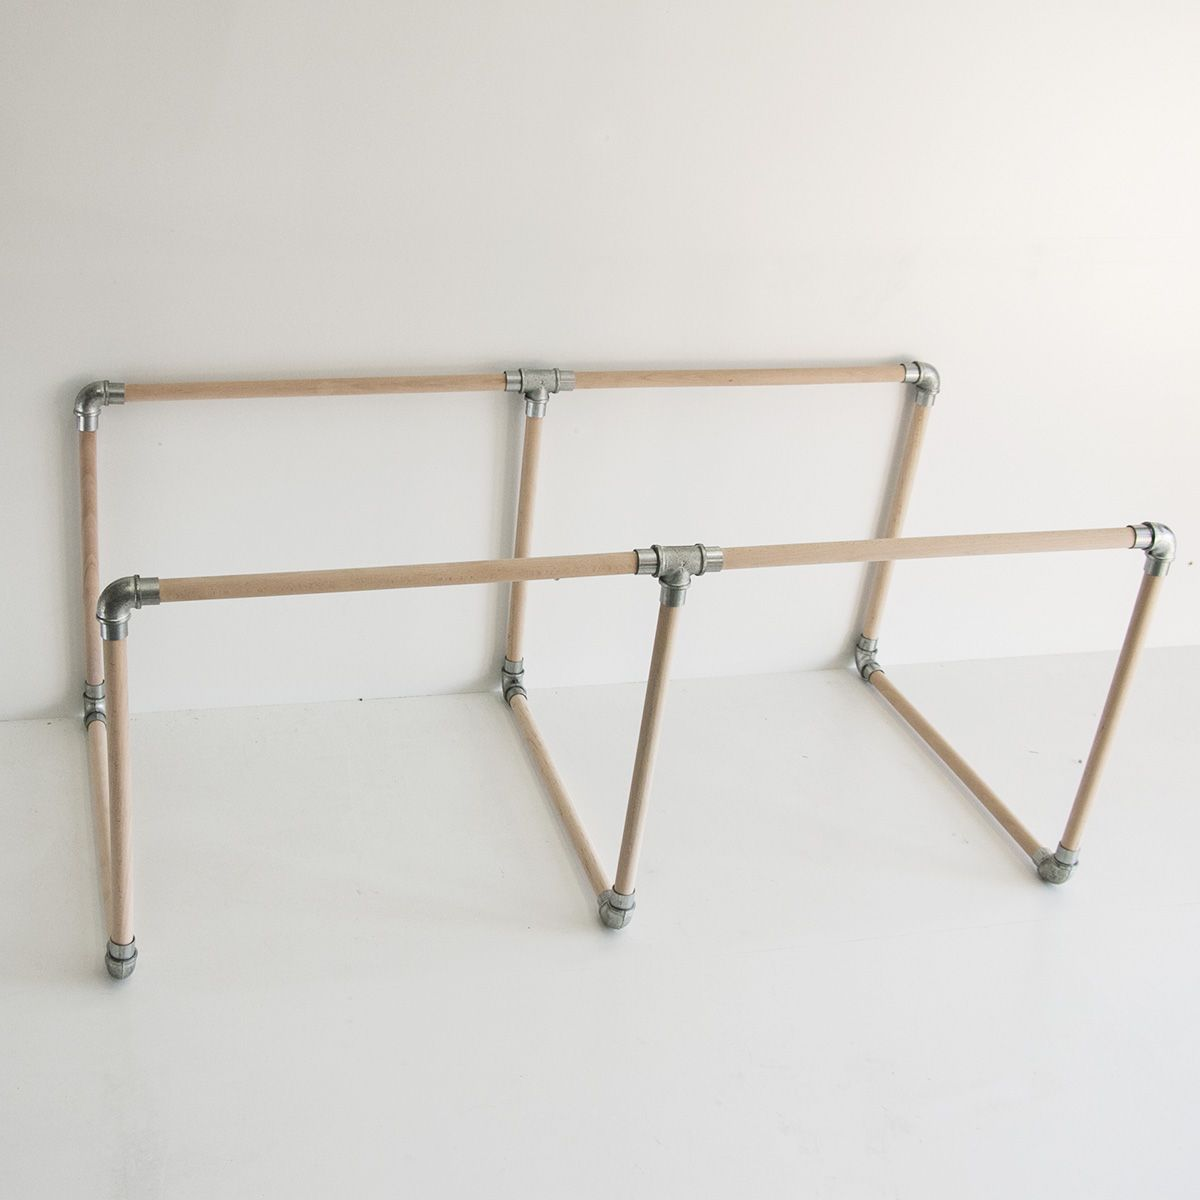 Image result for pipe fitting and dowel furniture woodwork diy ideas pipes pipe decor diy woodworking